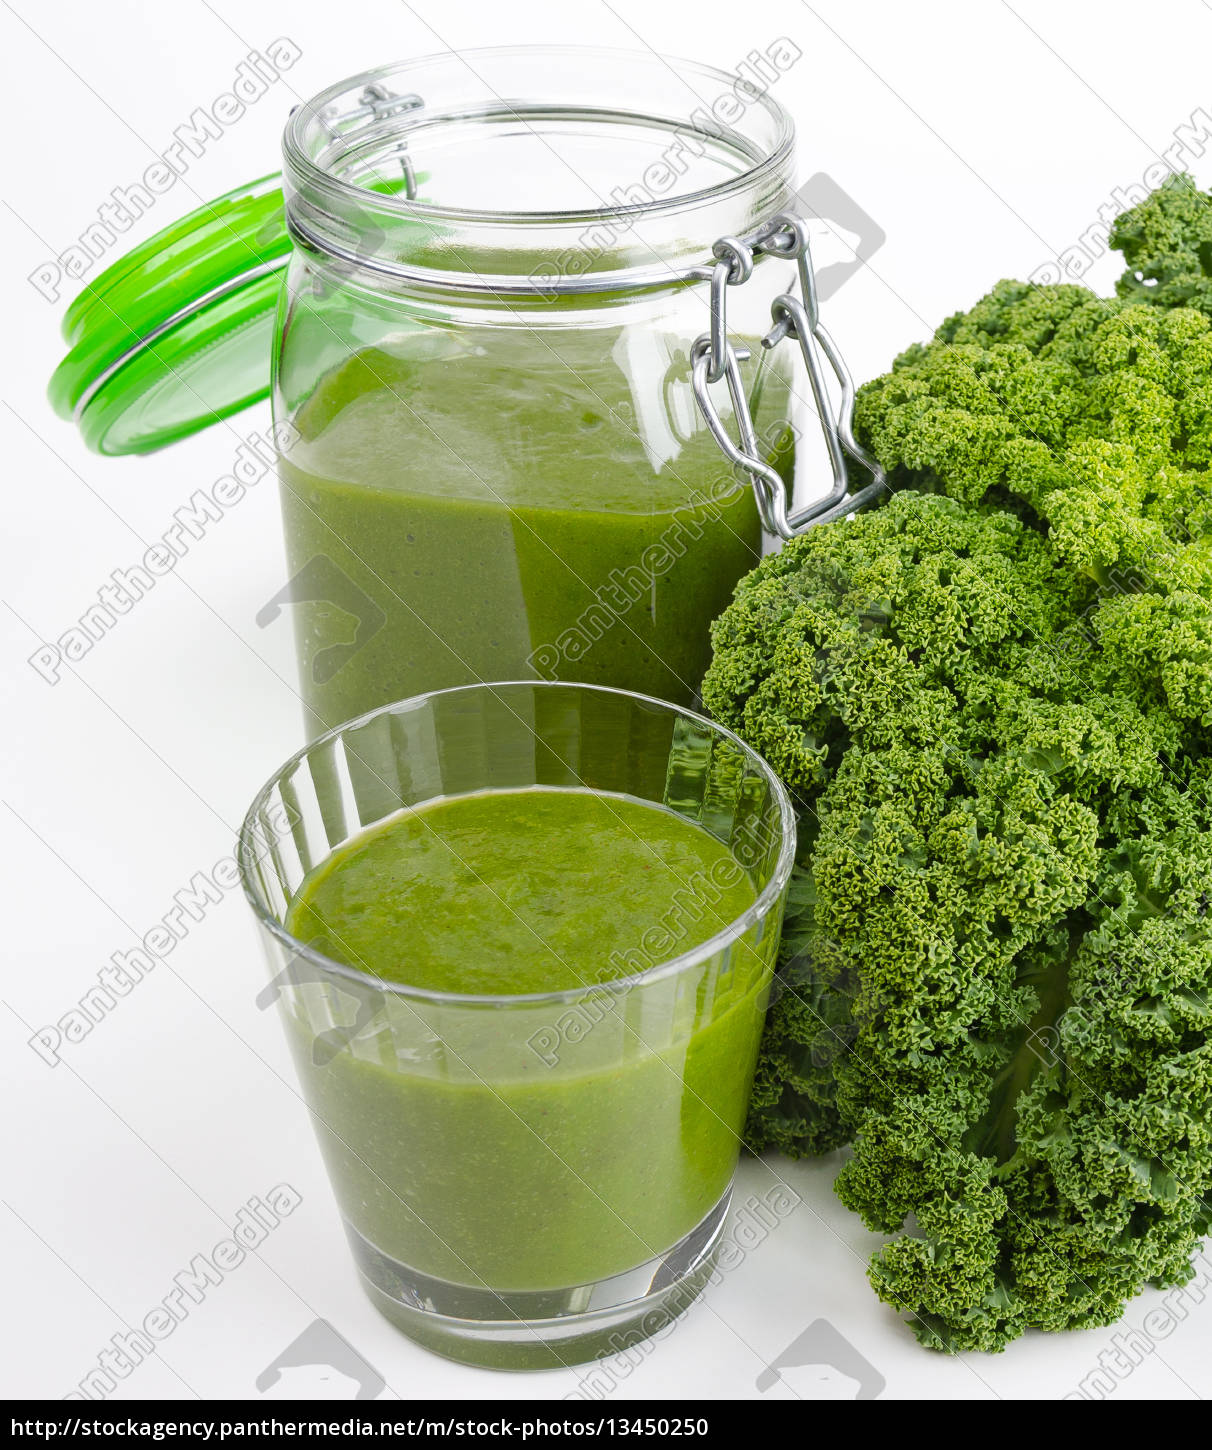 green, smoothie, glass, and, jar, with - 13450250